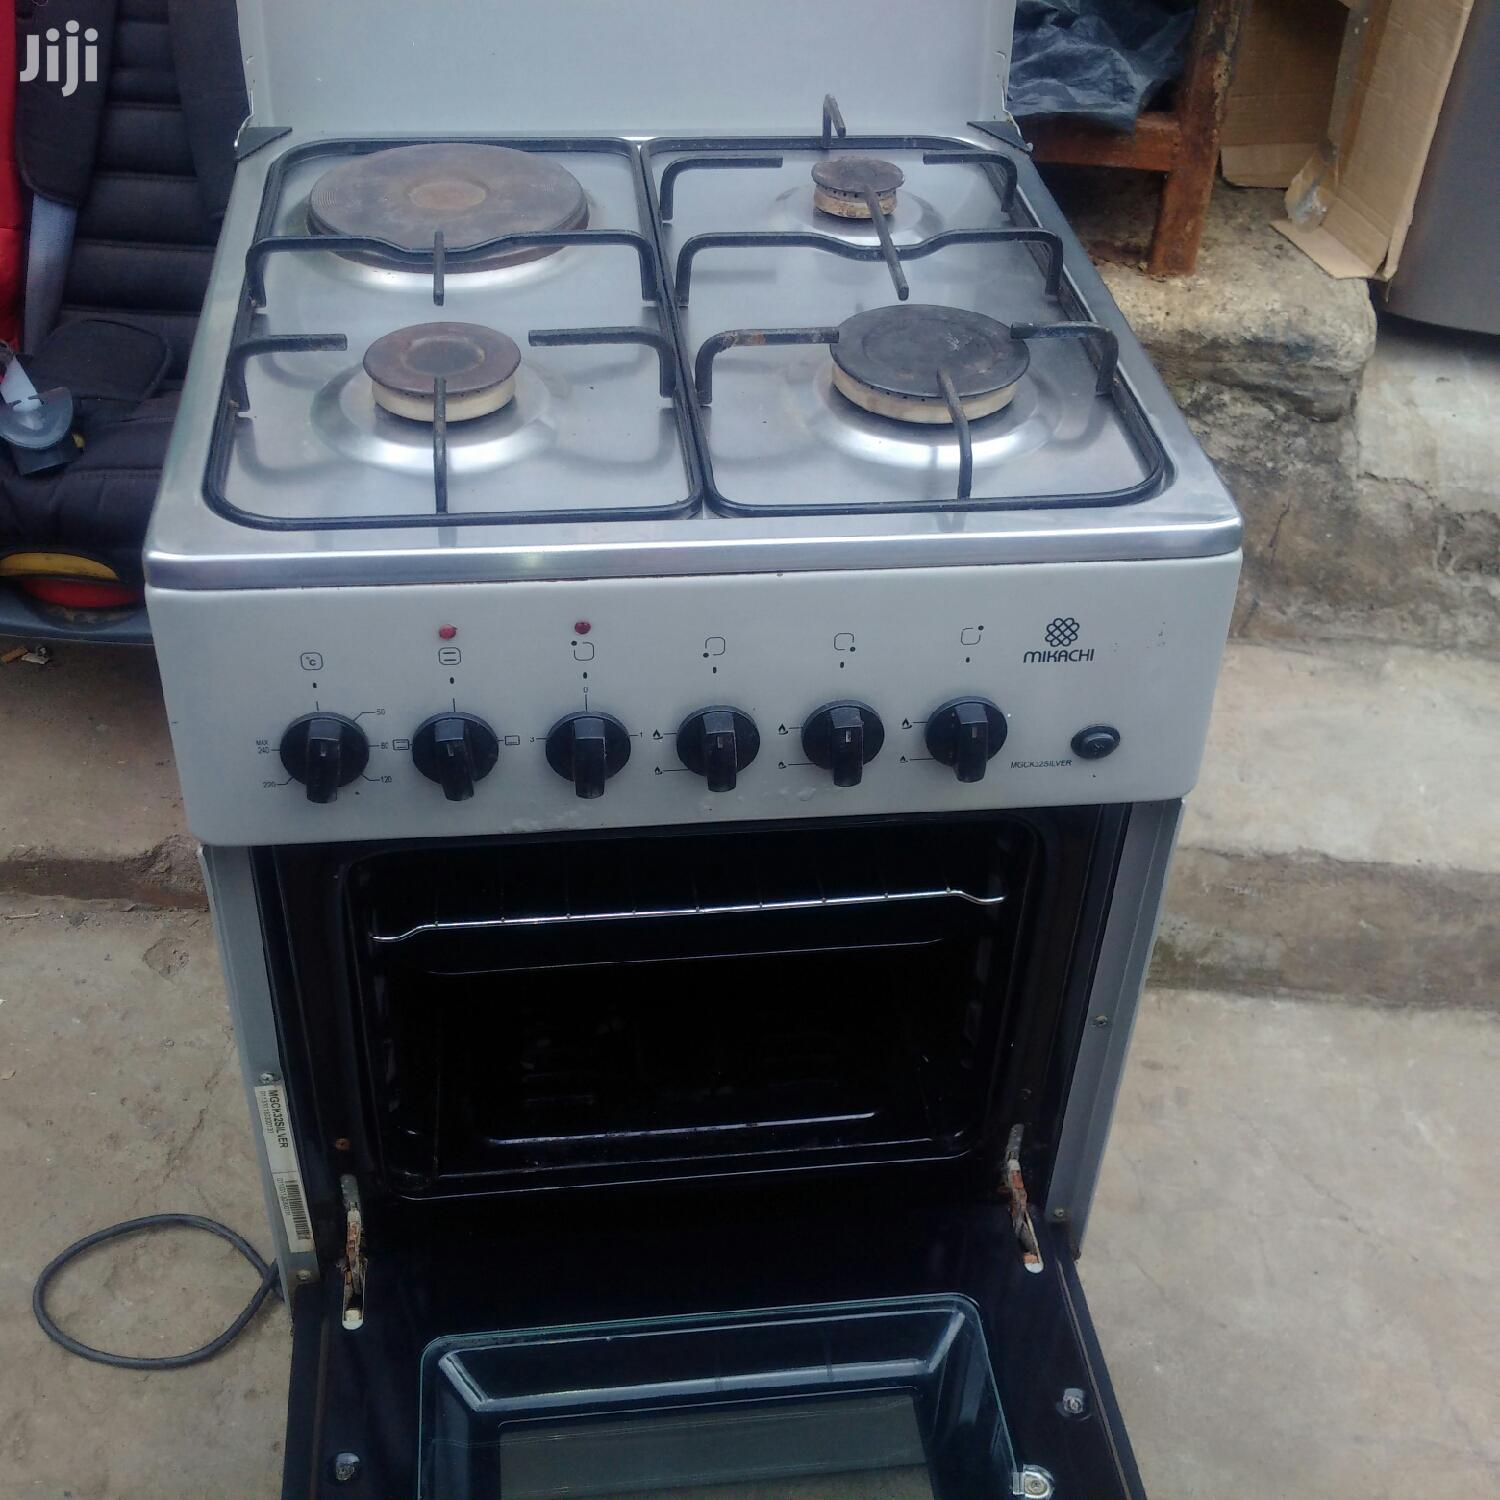 Mikachi Cooker 3gas 1 Electric Plus Oven